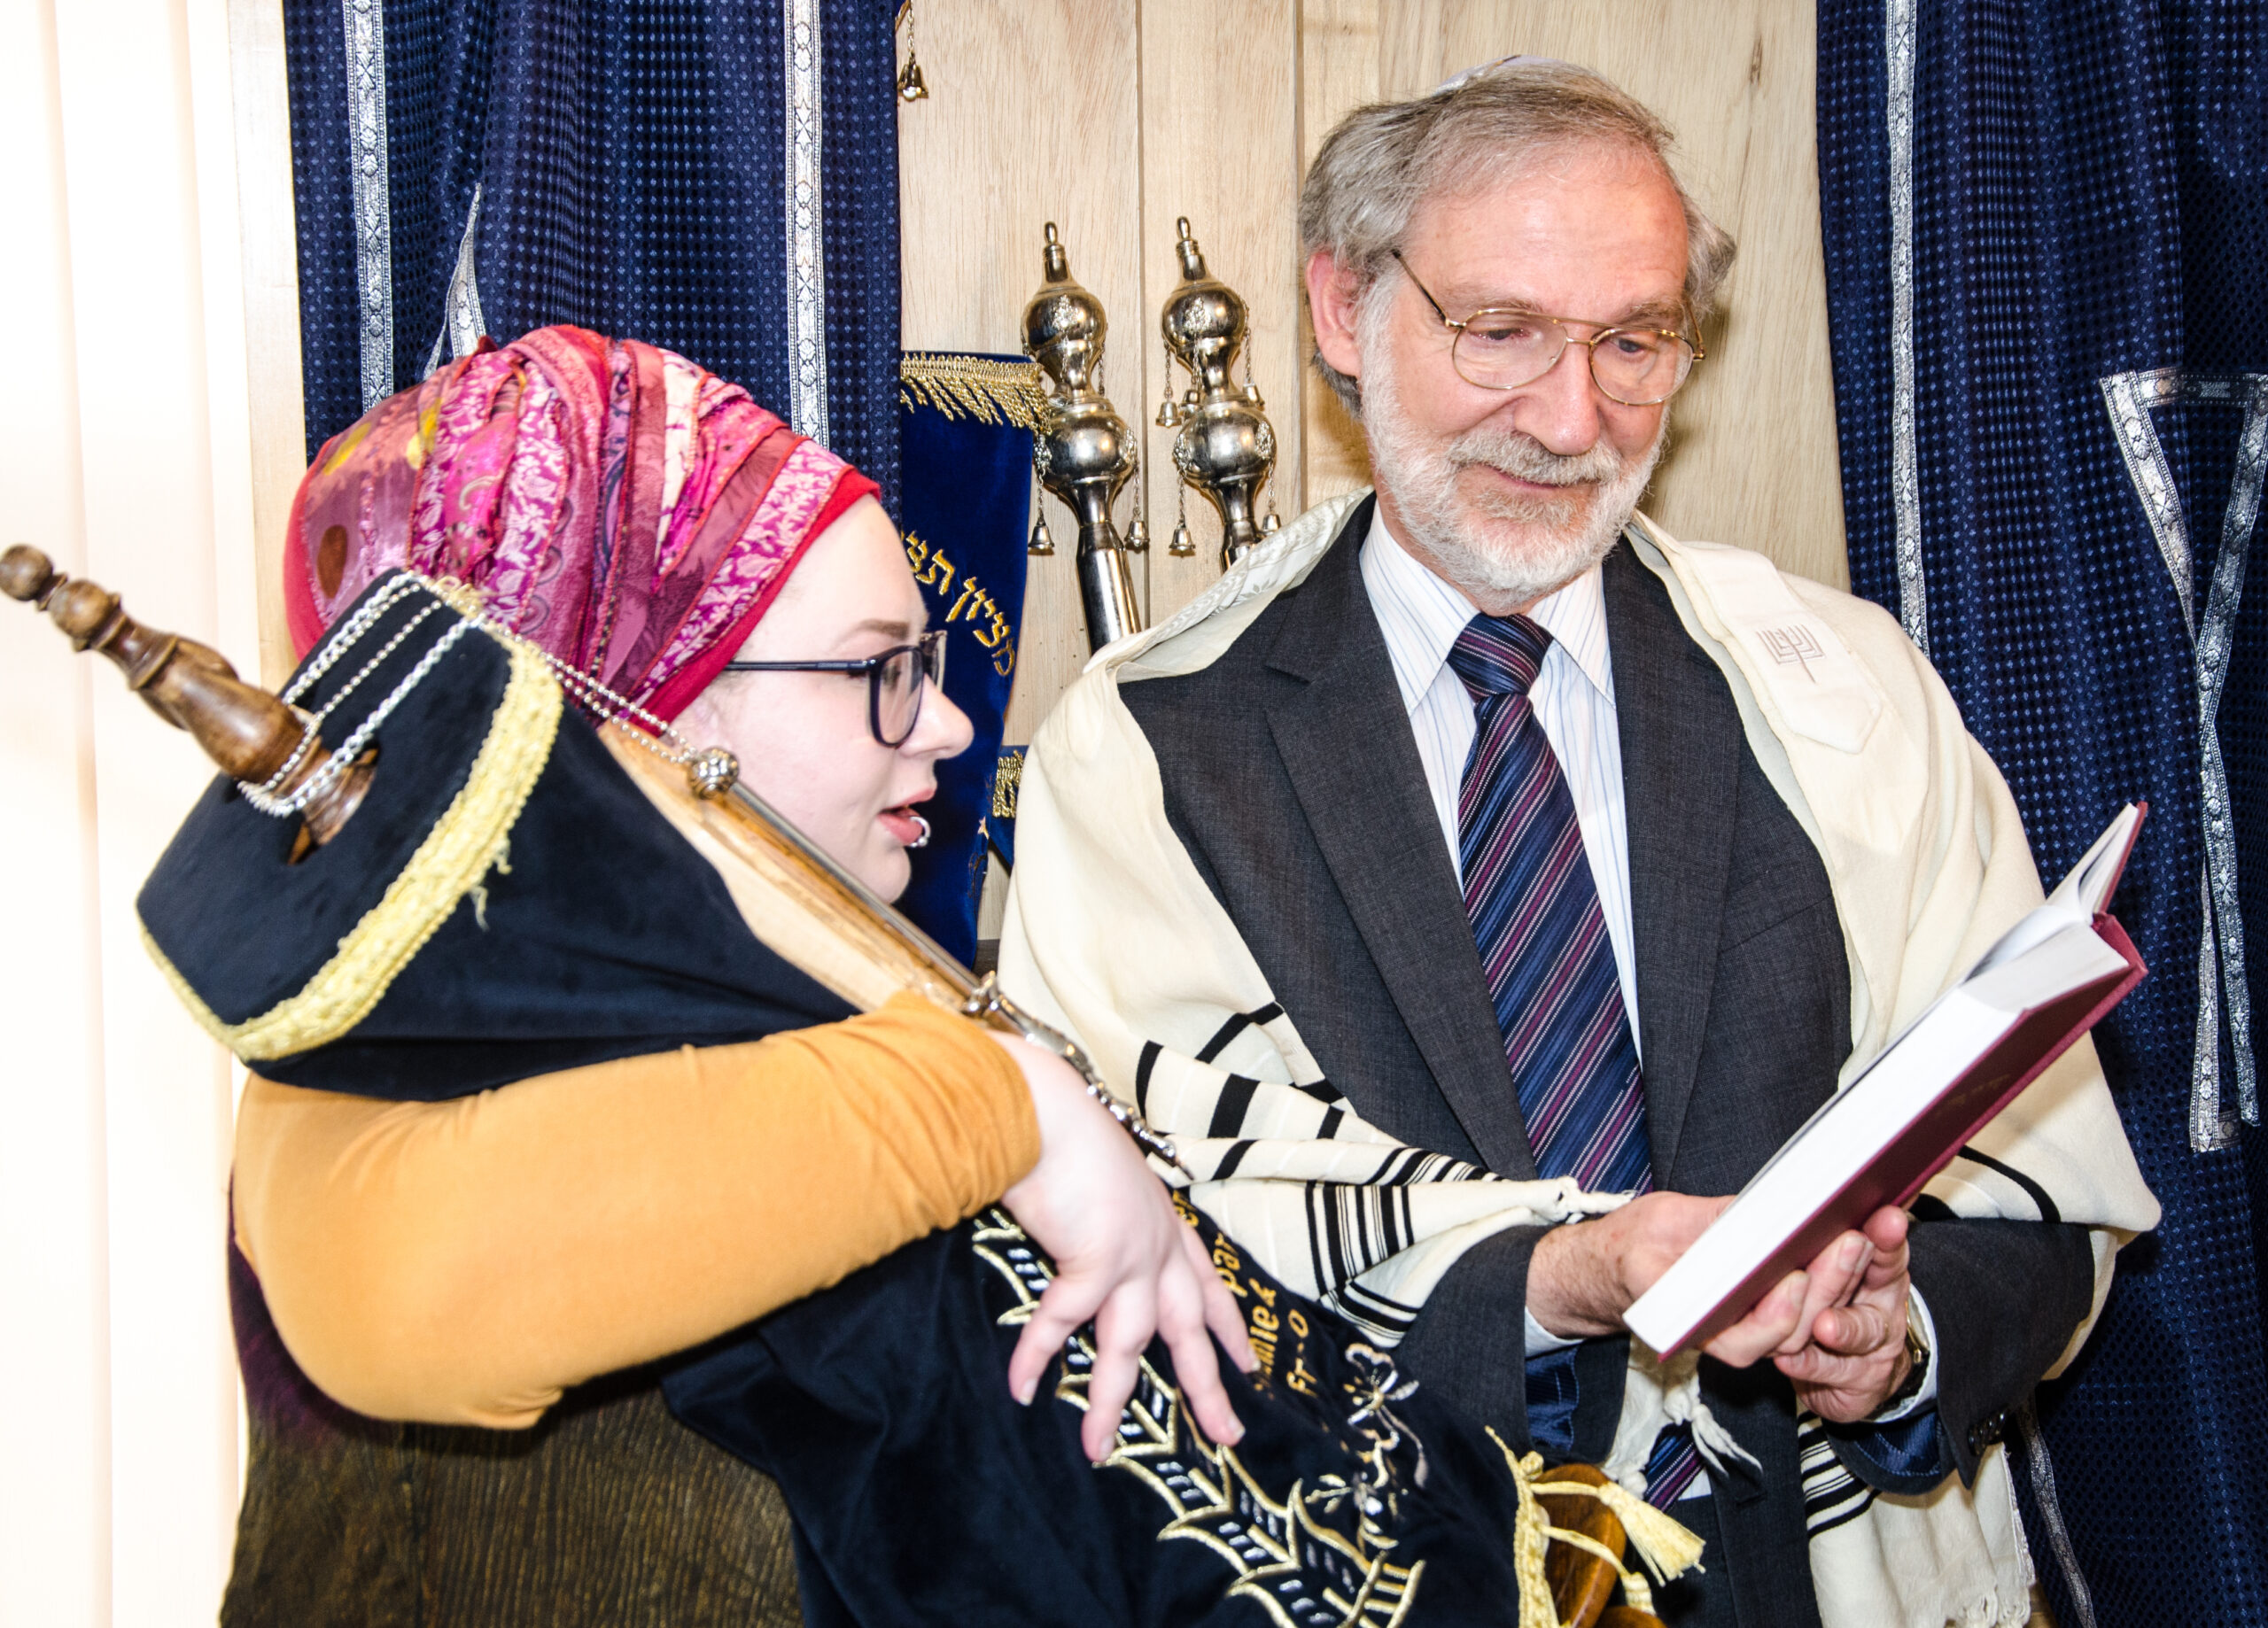 On March 14th 2020 our latest proselyte, Hannah, was formally admitted to Judaism by Rabbi David Hulbert